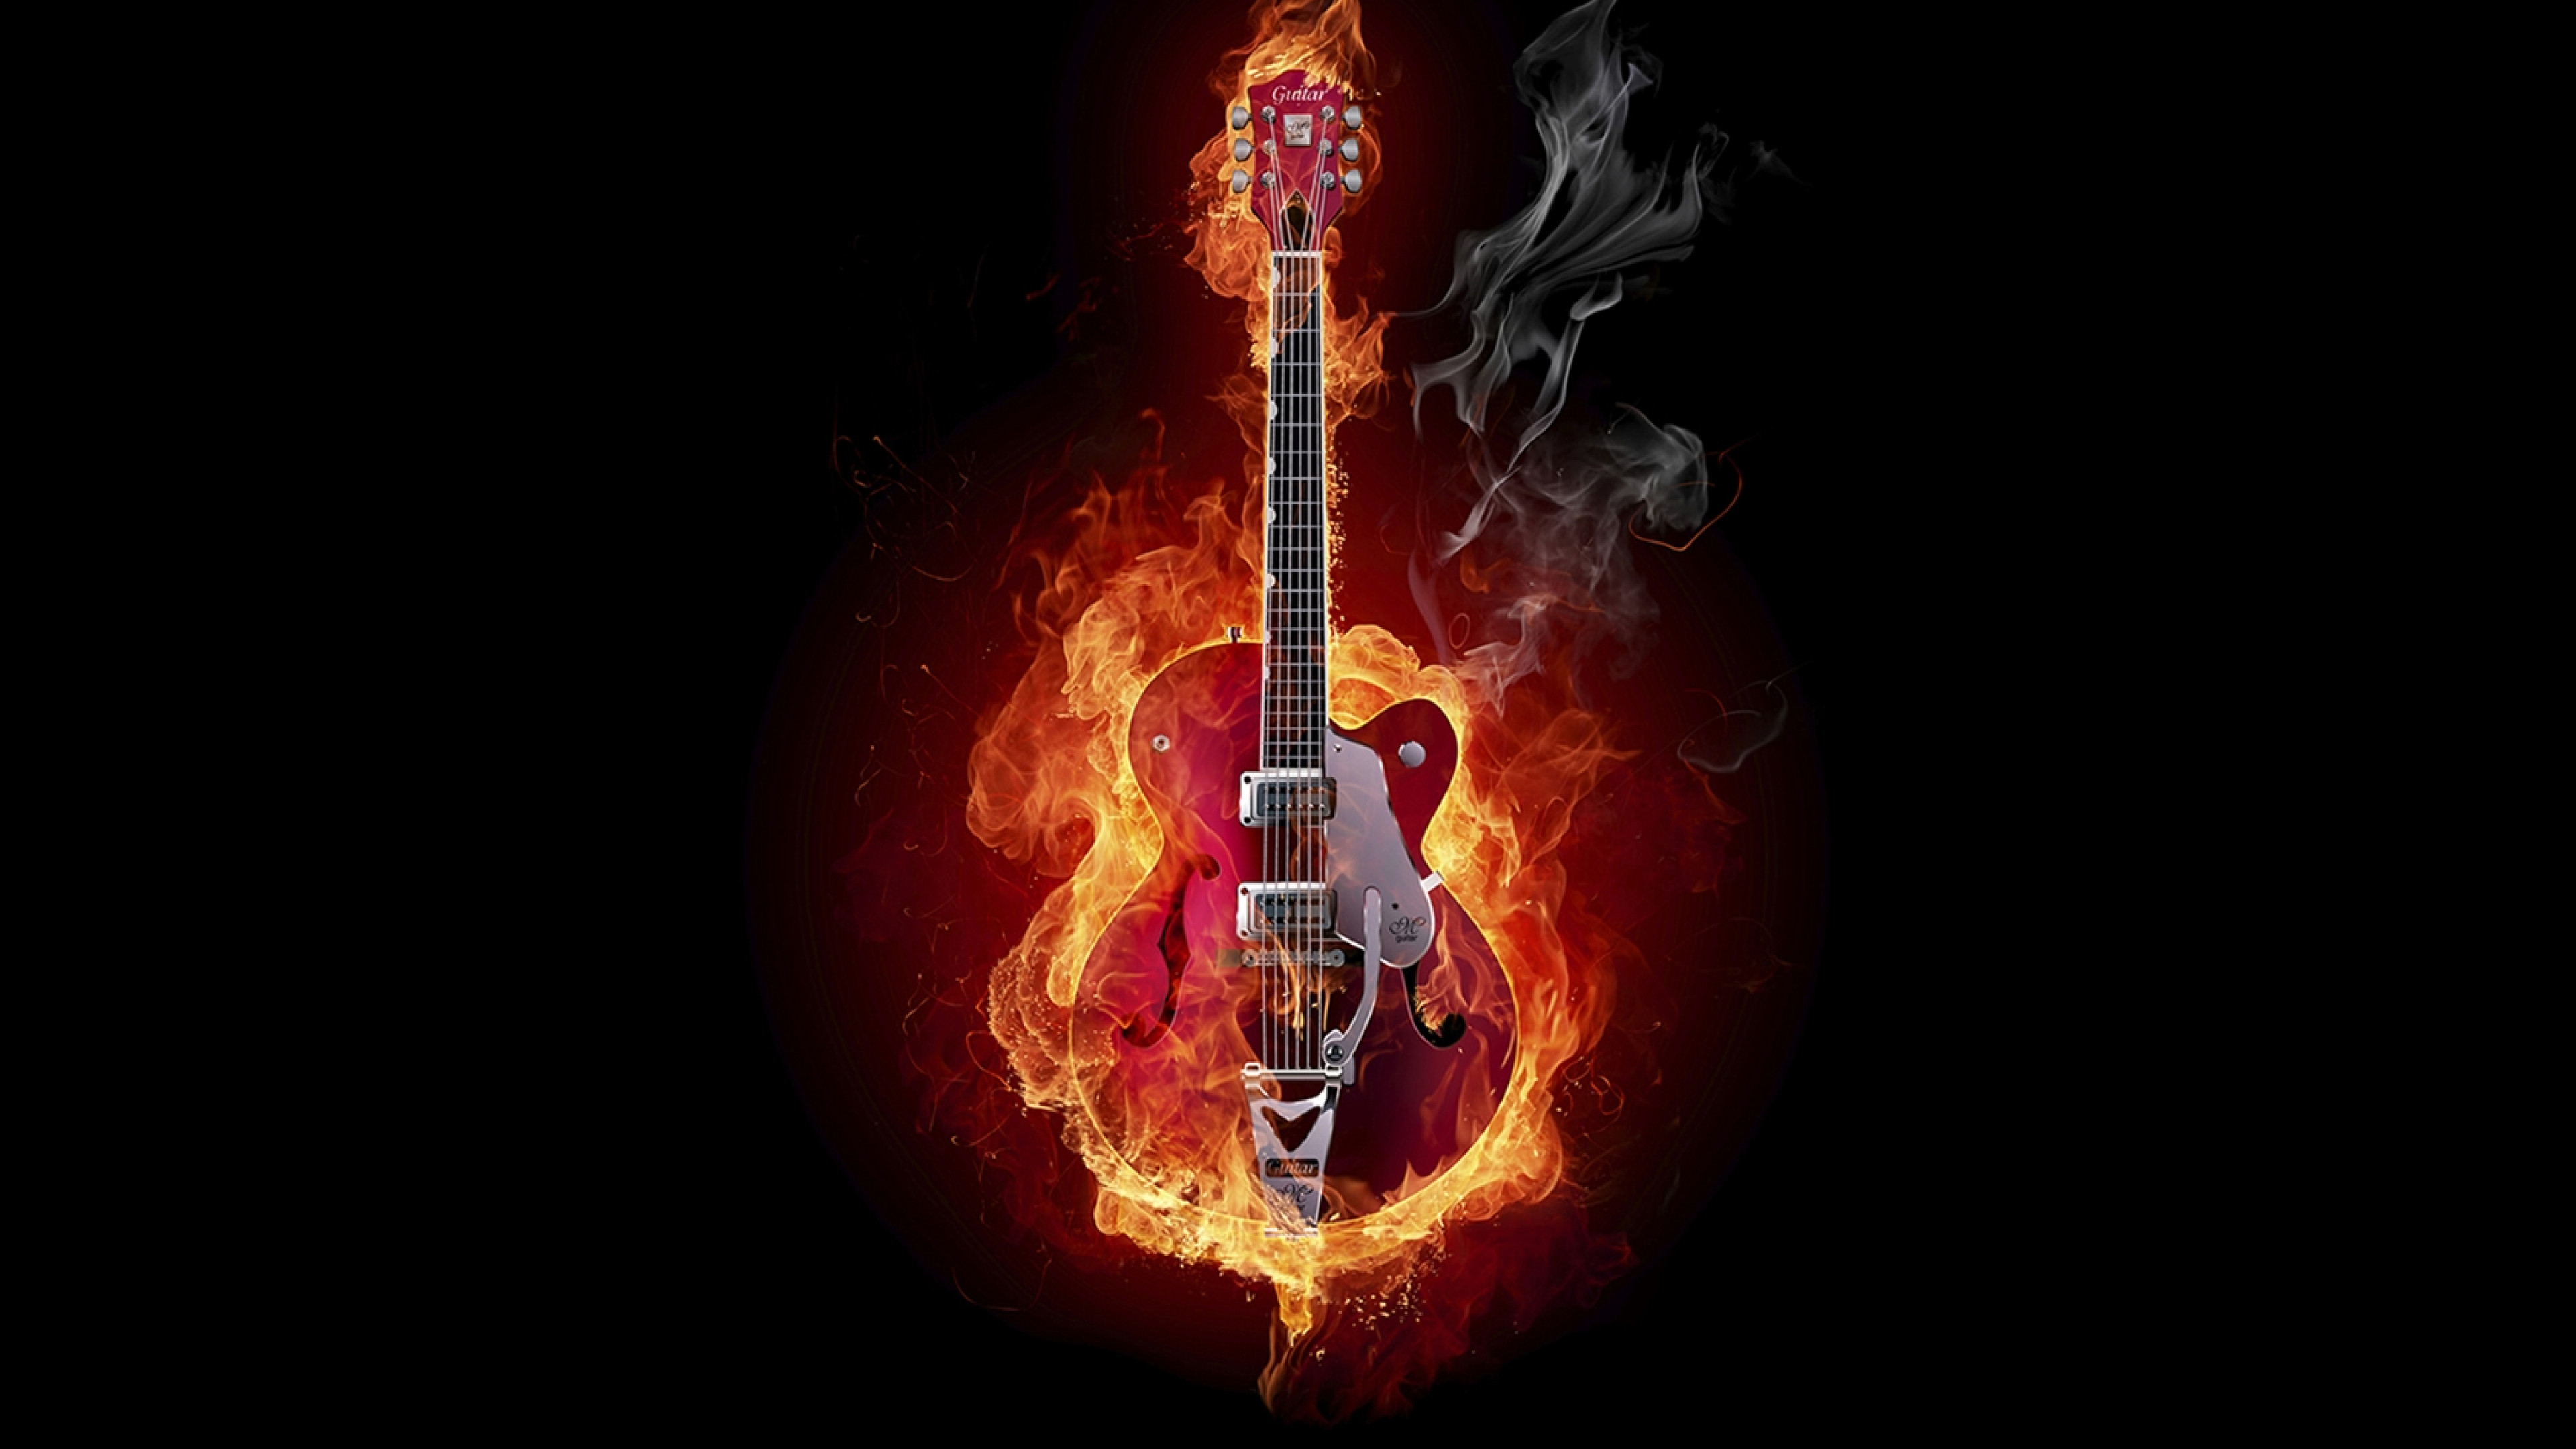 3840x2160 Preview wallpaper guitar, fire, instrument, smoke, background